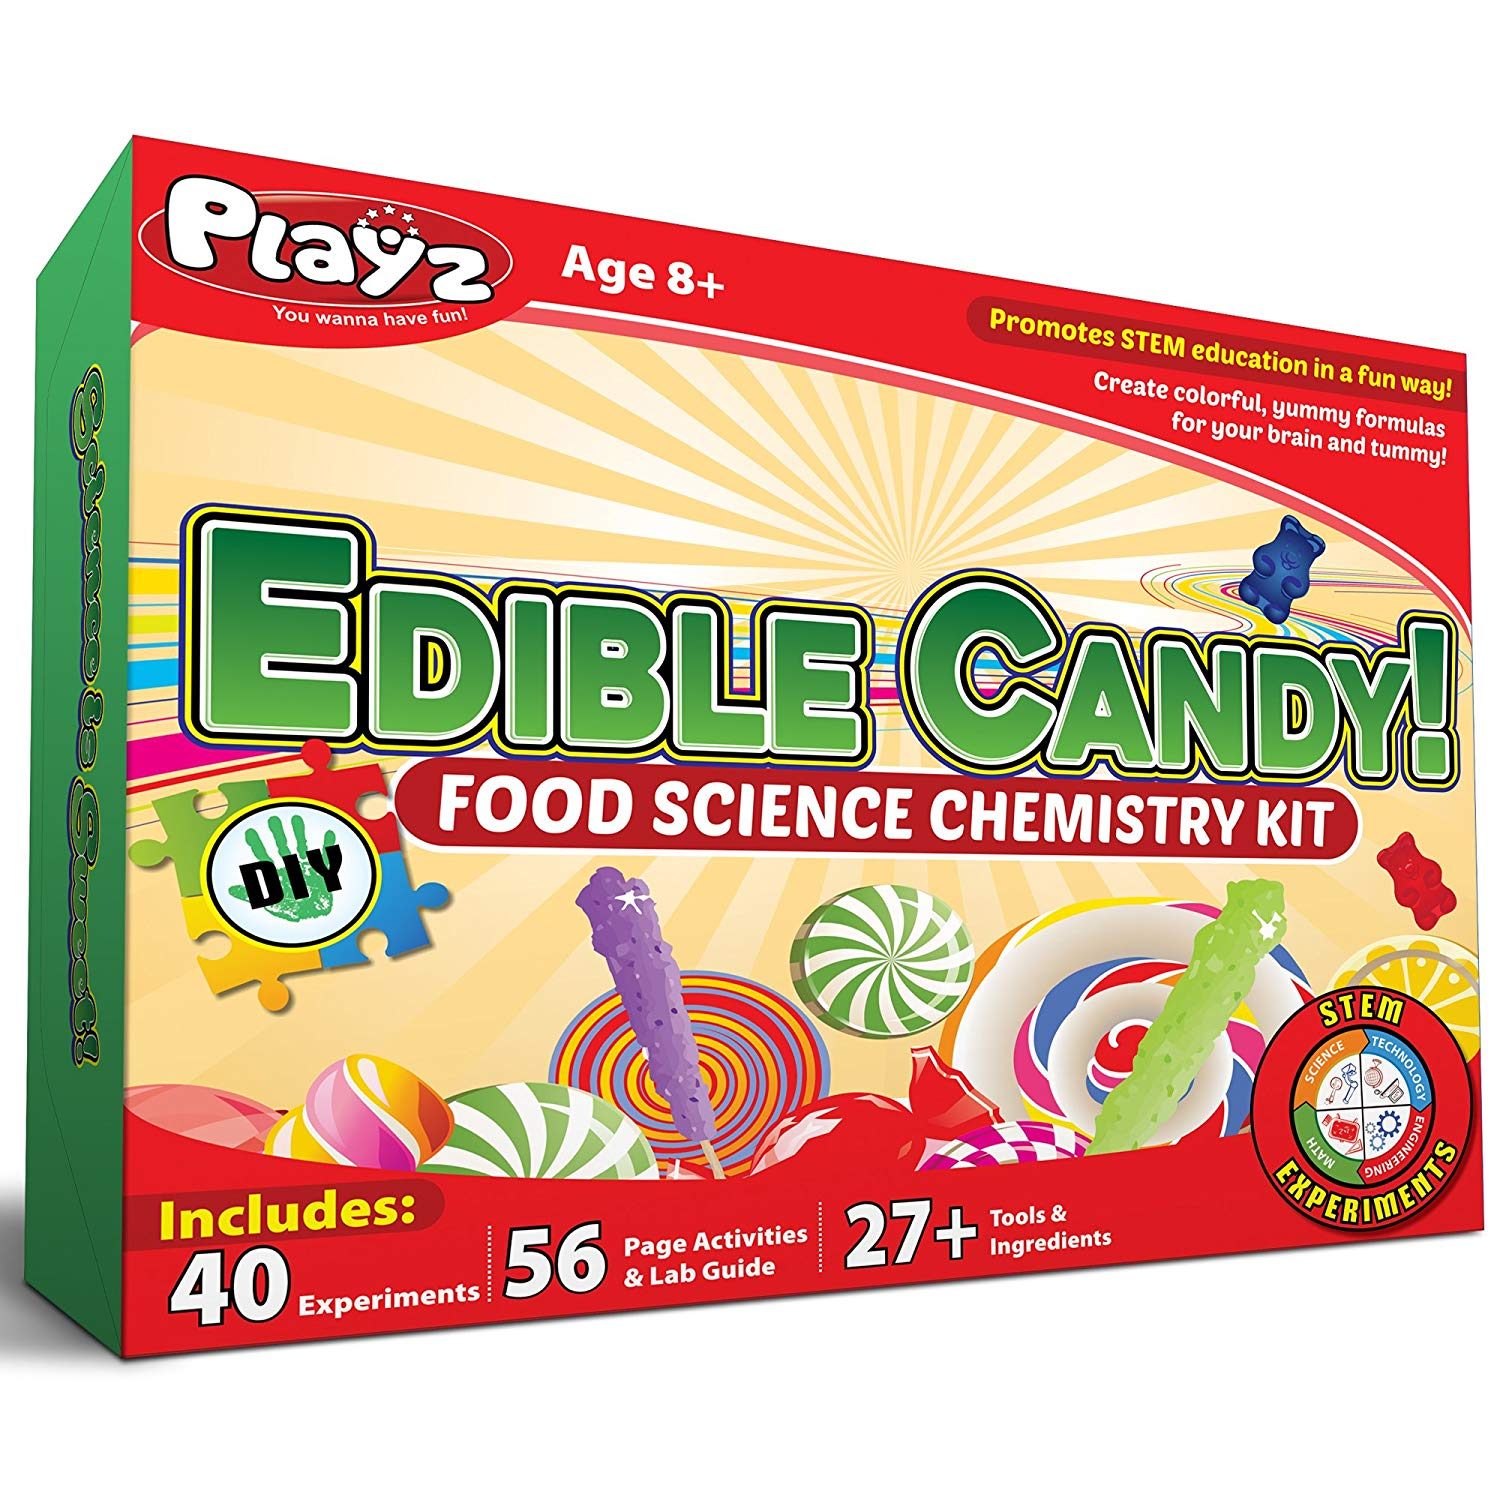 Playz Edible Candy! Food Science STEM Chemistry Kit